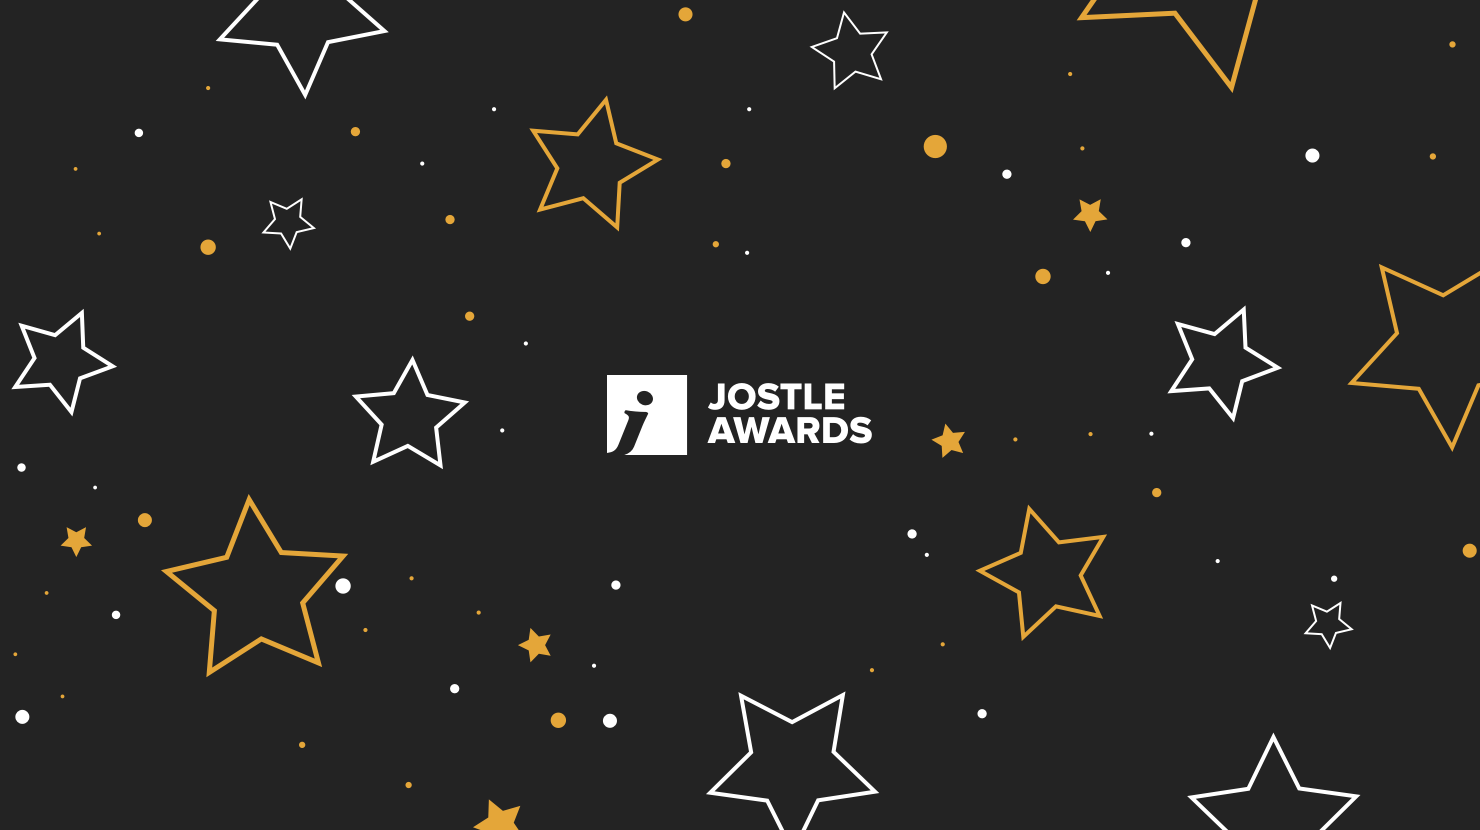 Jostle Awards 2018: Call for nominations!